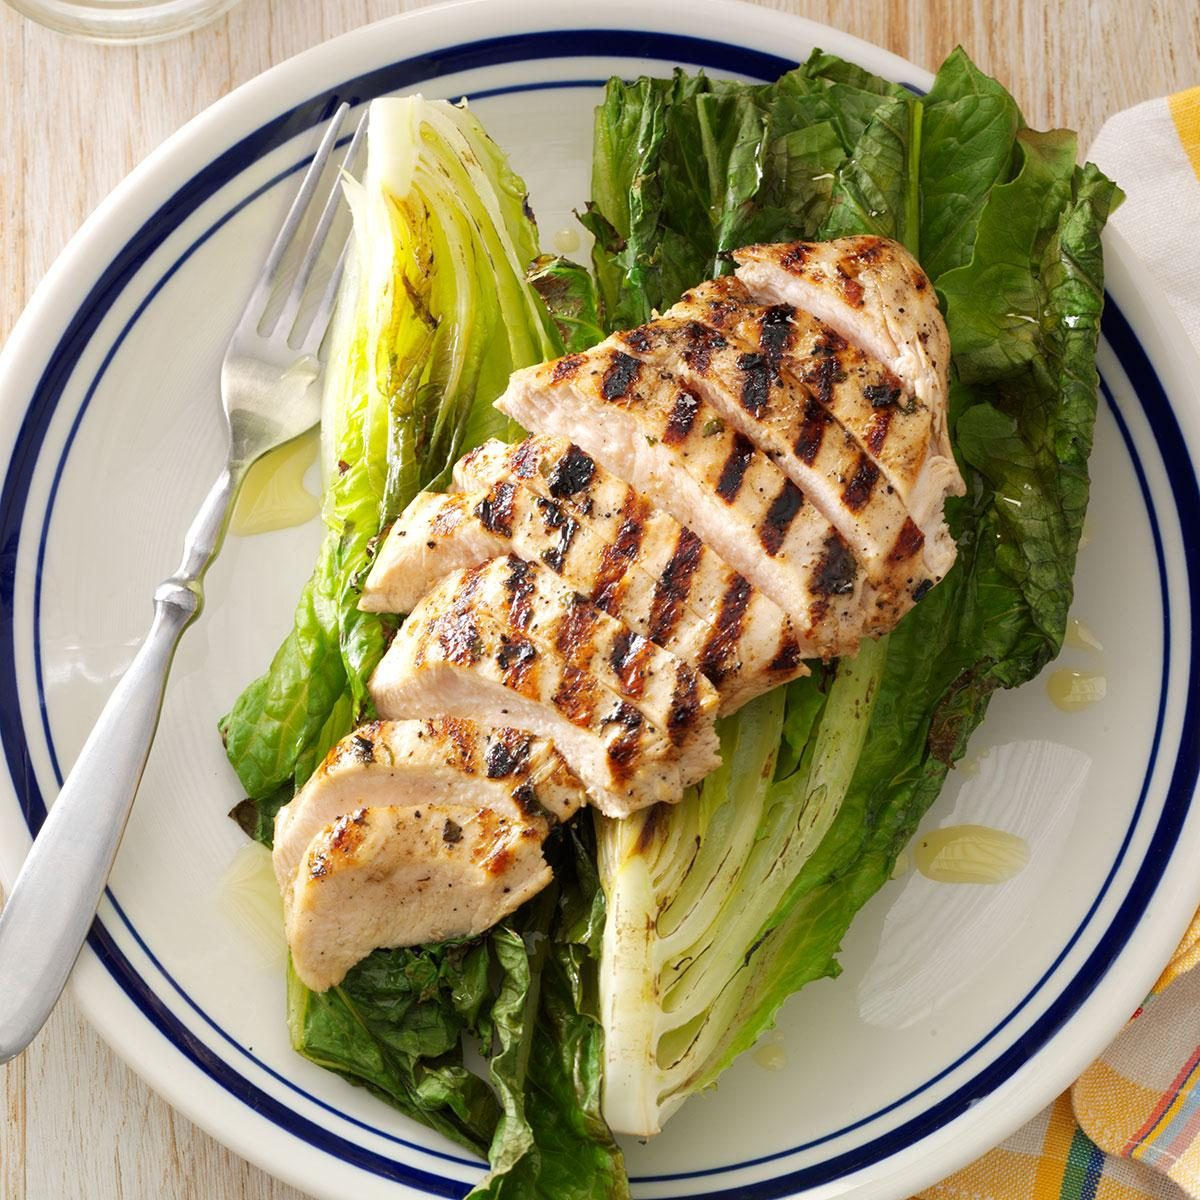 Day 7 Lunch: Grilled Basil Chicken